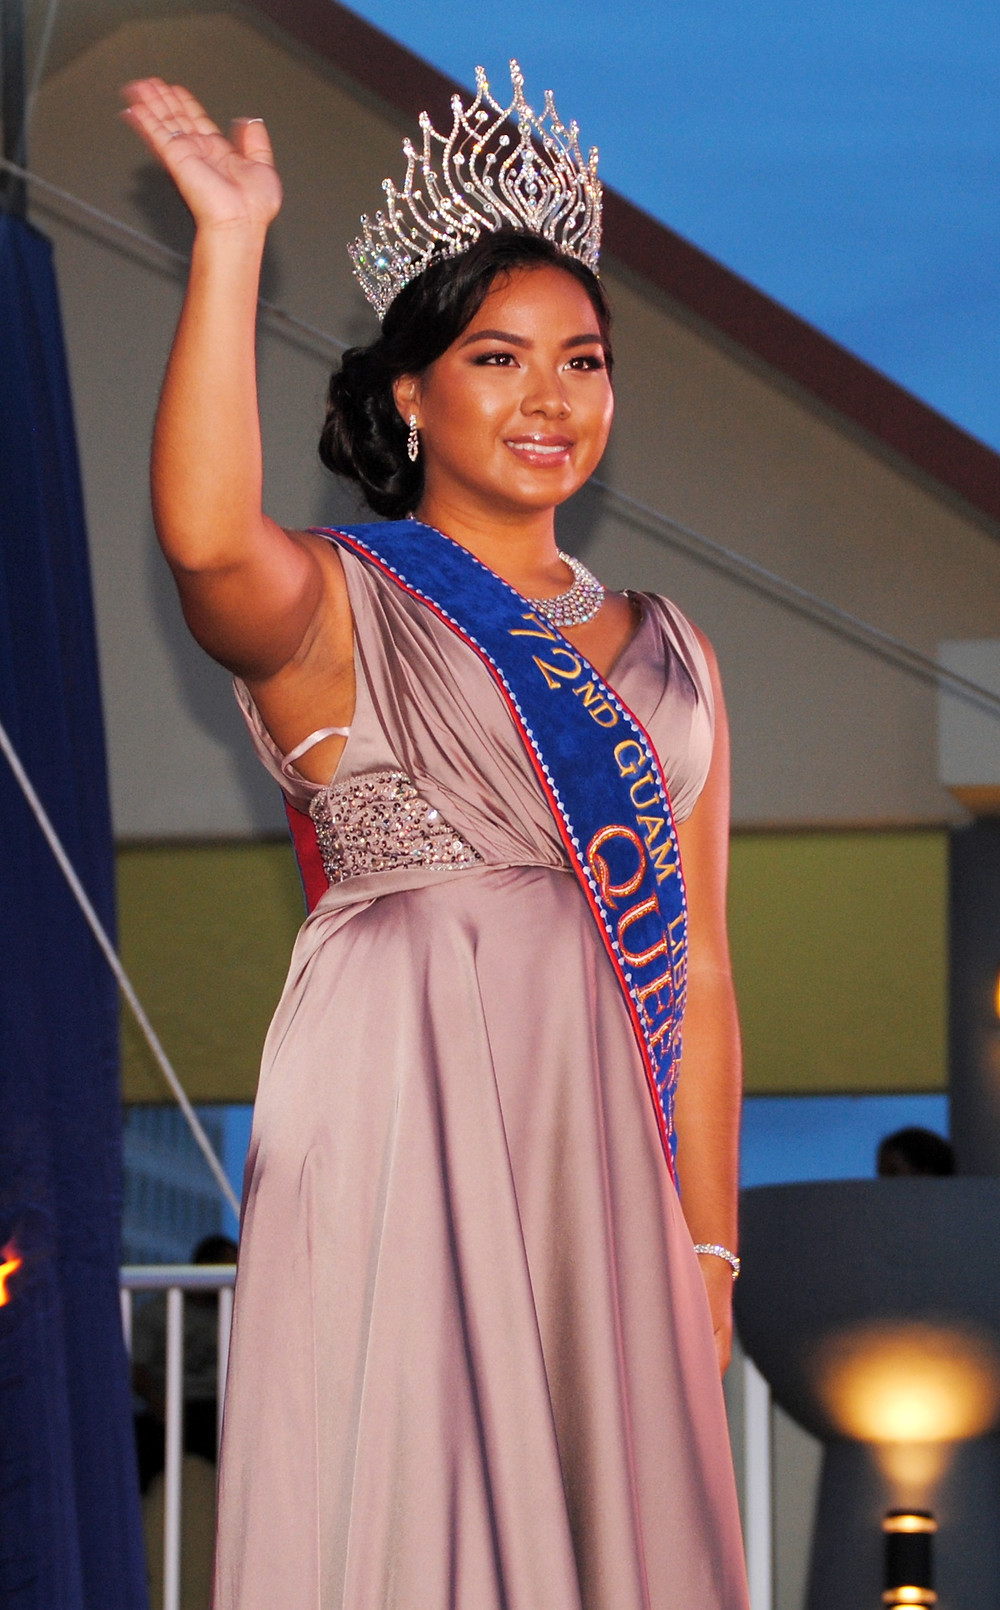 Seventy-second Liberation Day Queen Alana Chargualaf